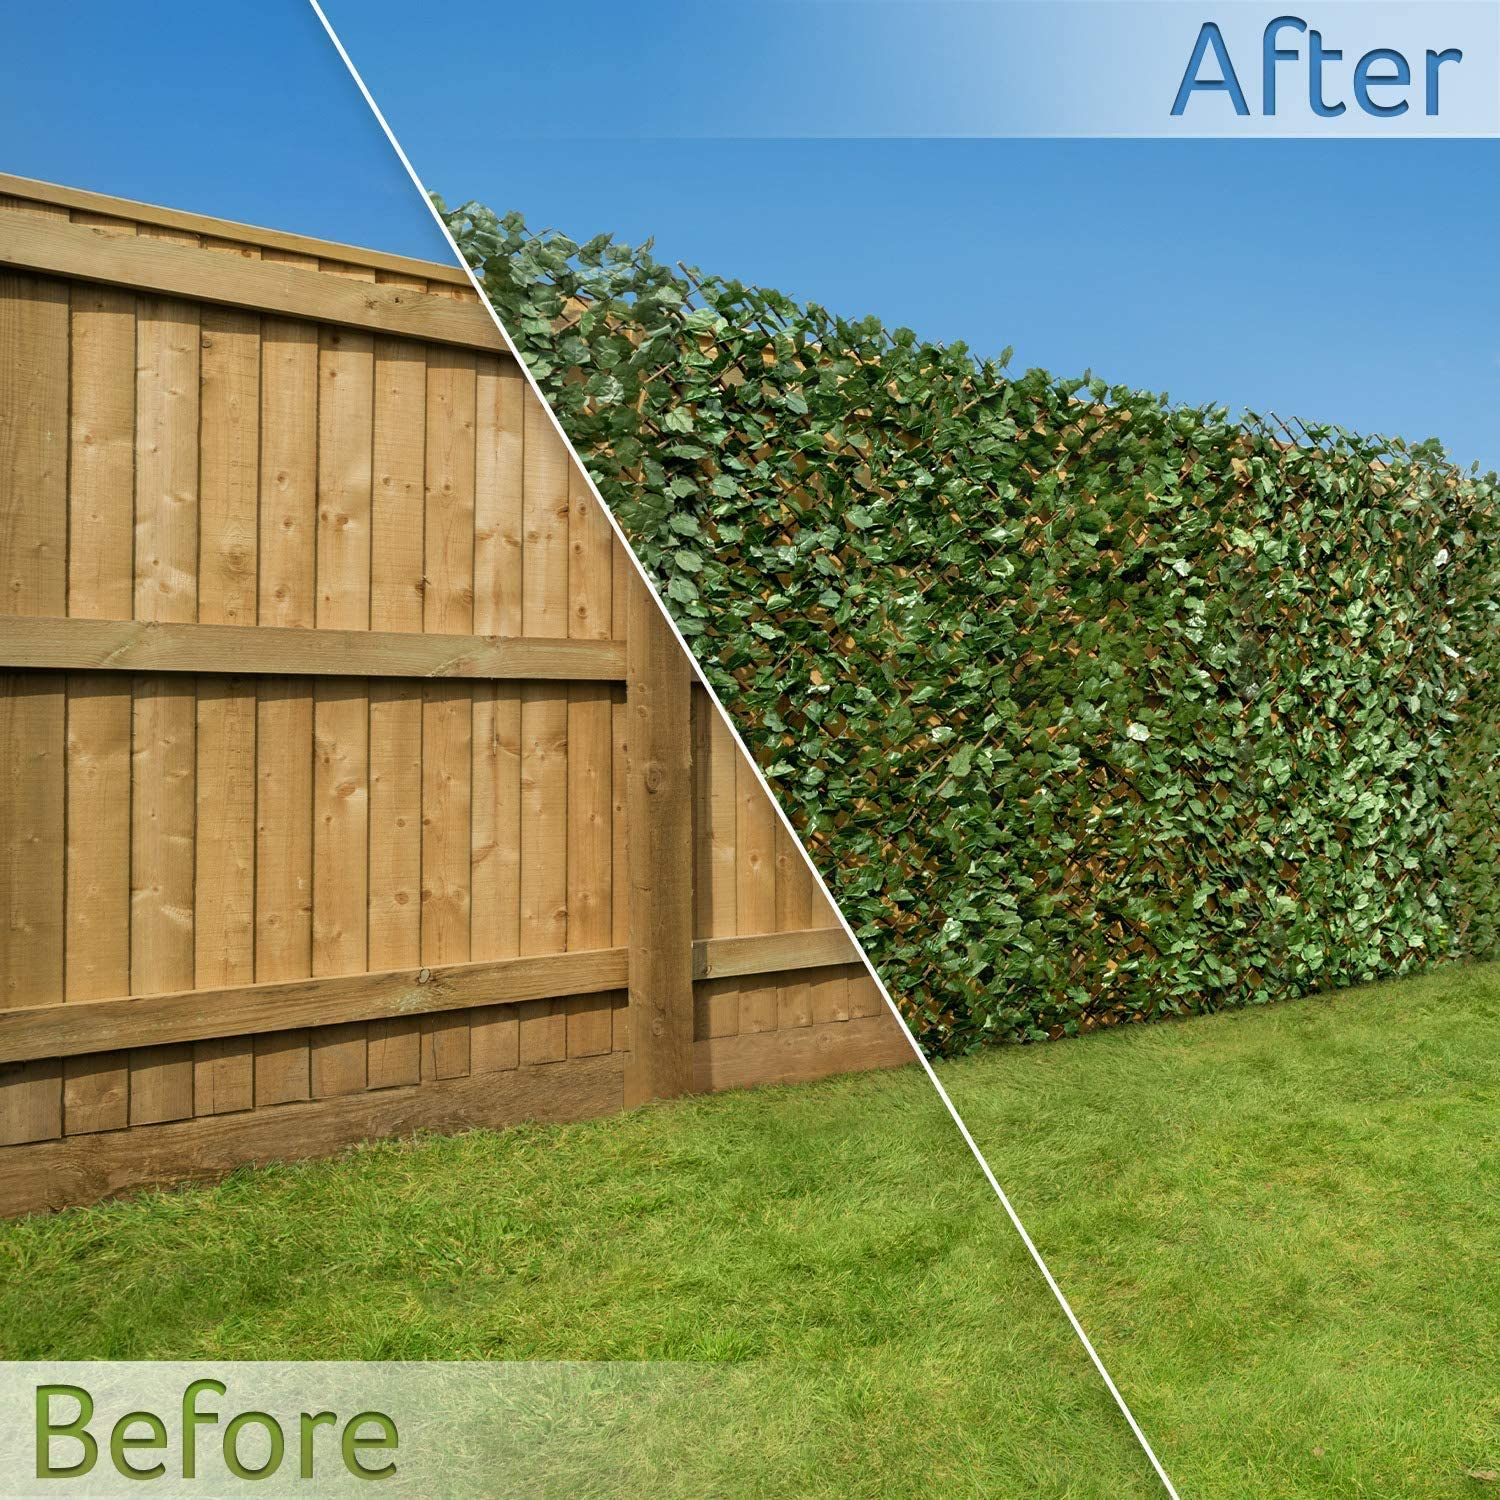 3ft 3 X 6ft 5 Artificial Ivy Leaf Hedge Screening H1m X W2m Outdoor Garden Privacy